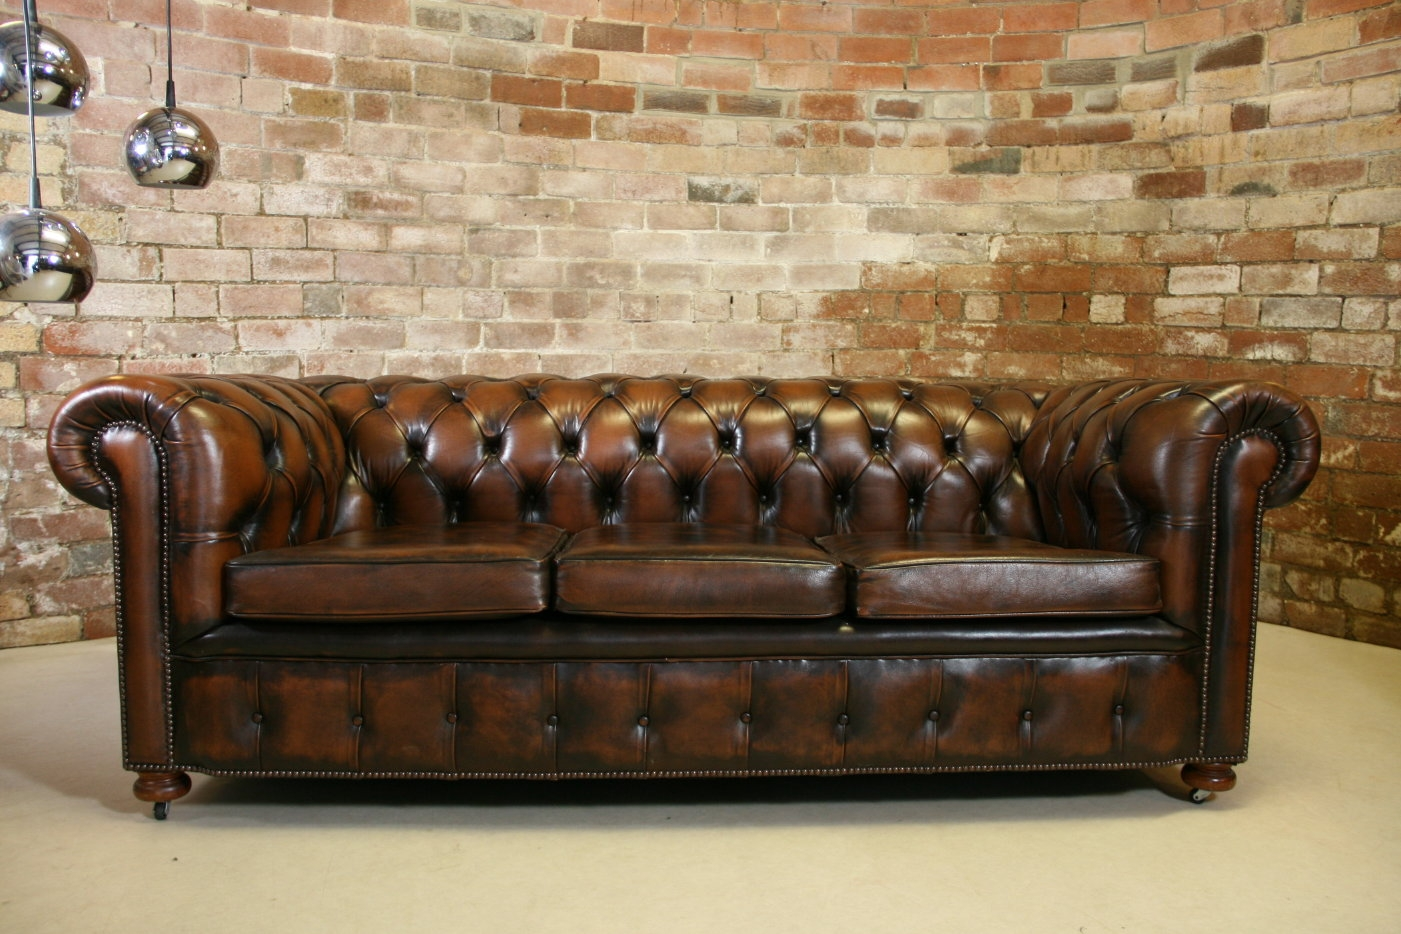 Vintage Chesterfield Antique Brown Leather 3 Seater Sofa Retro Pertaining To Leather Chesterfield Sofas (Image 15 of 15)